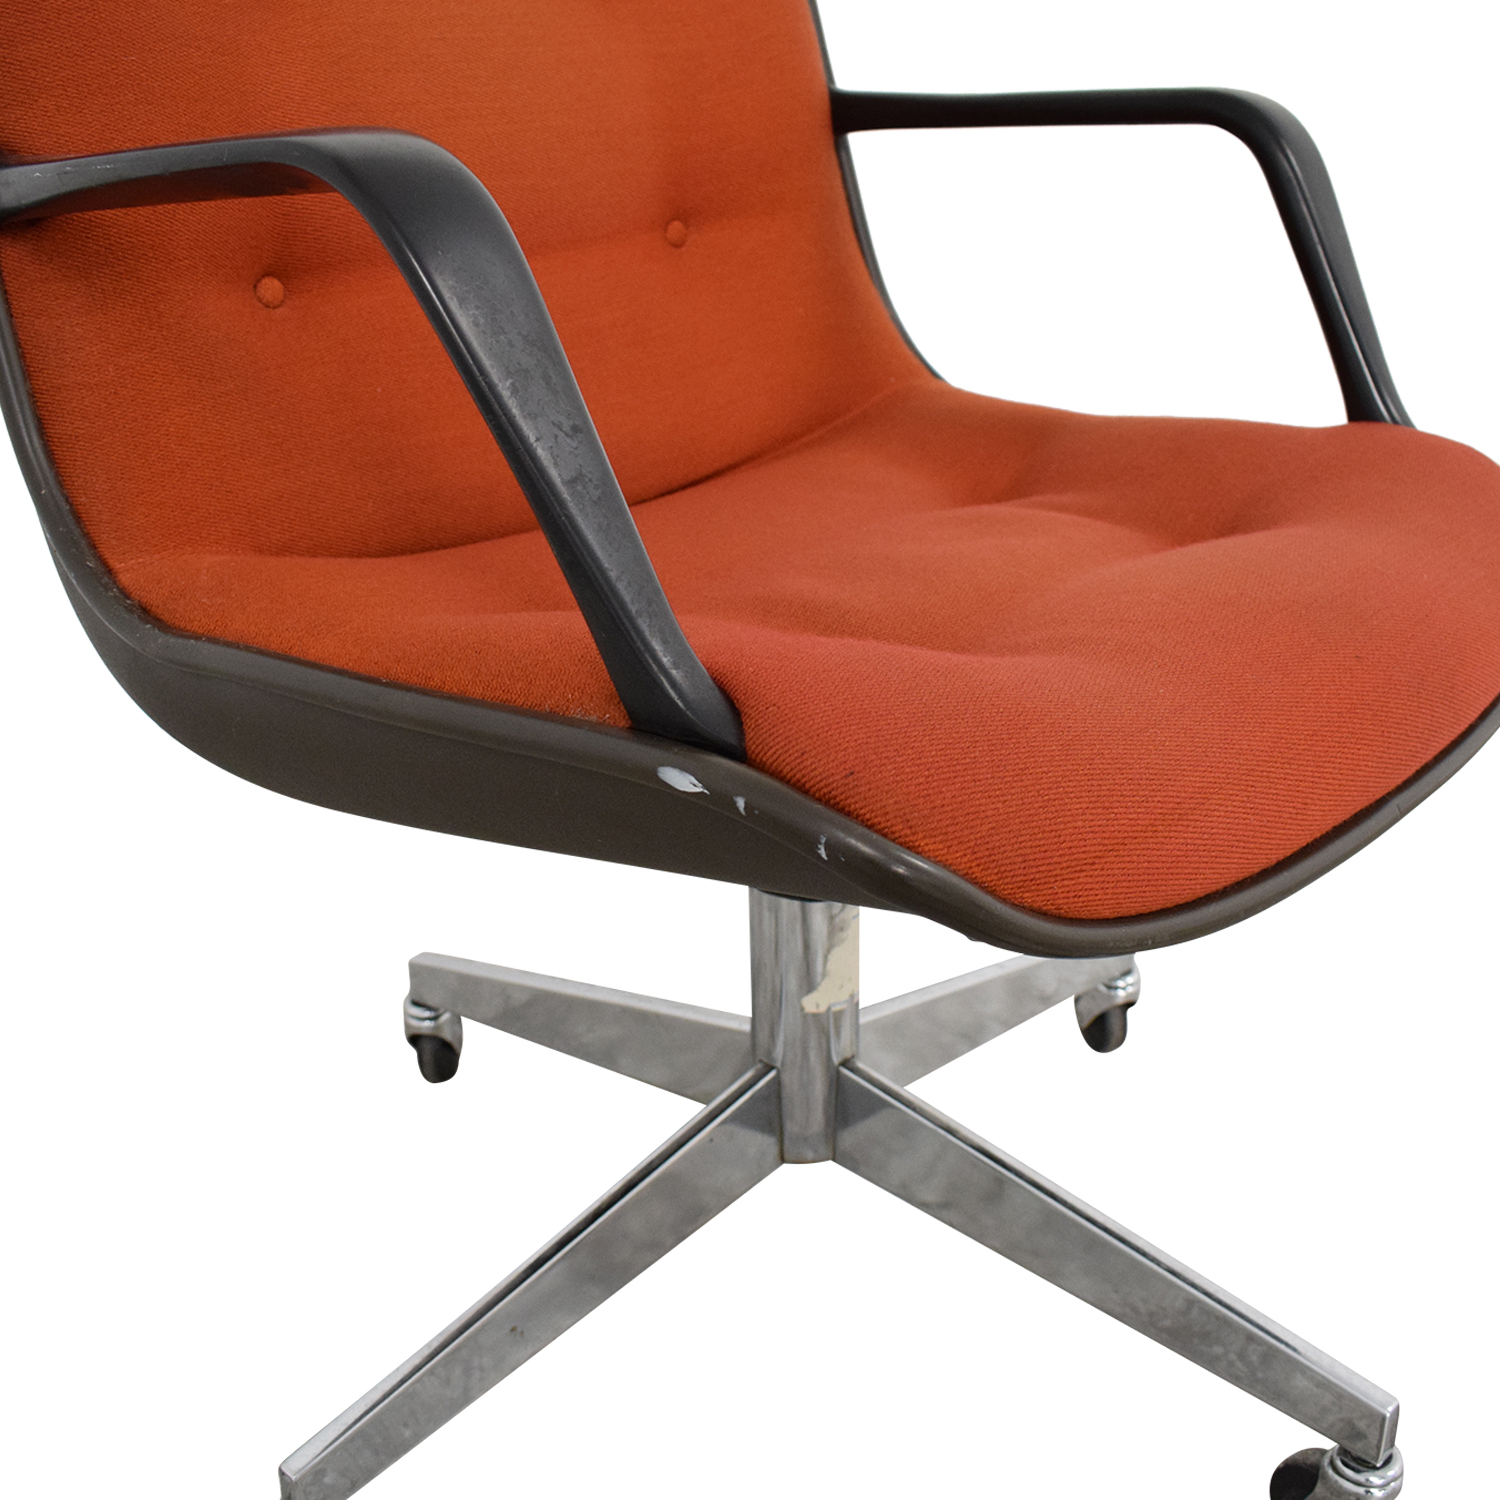 Steelcase Steelcase Mid Century Modern Office Chair Home Office Chairs